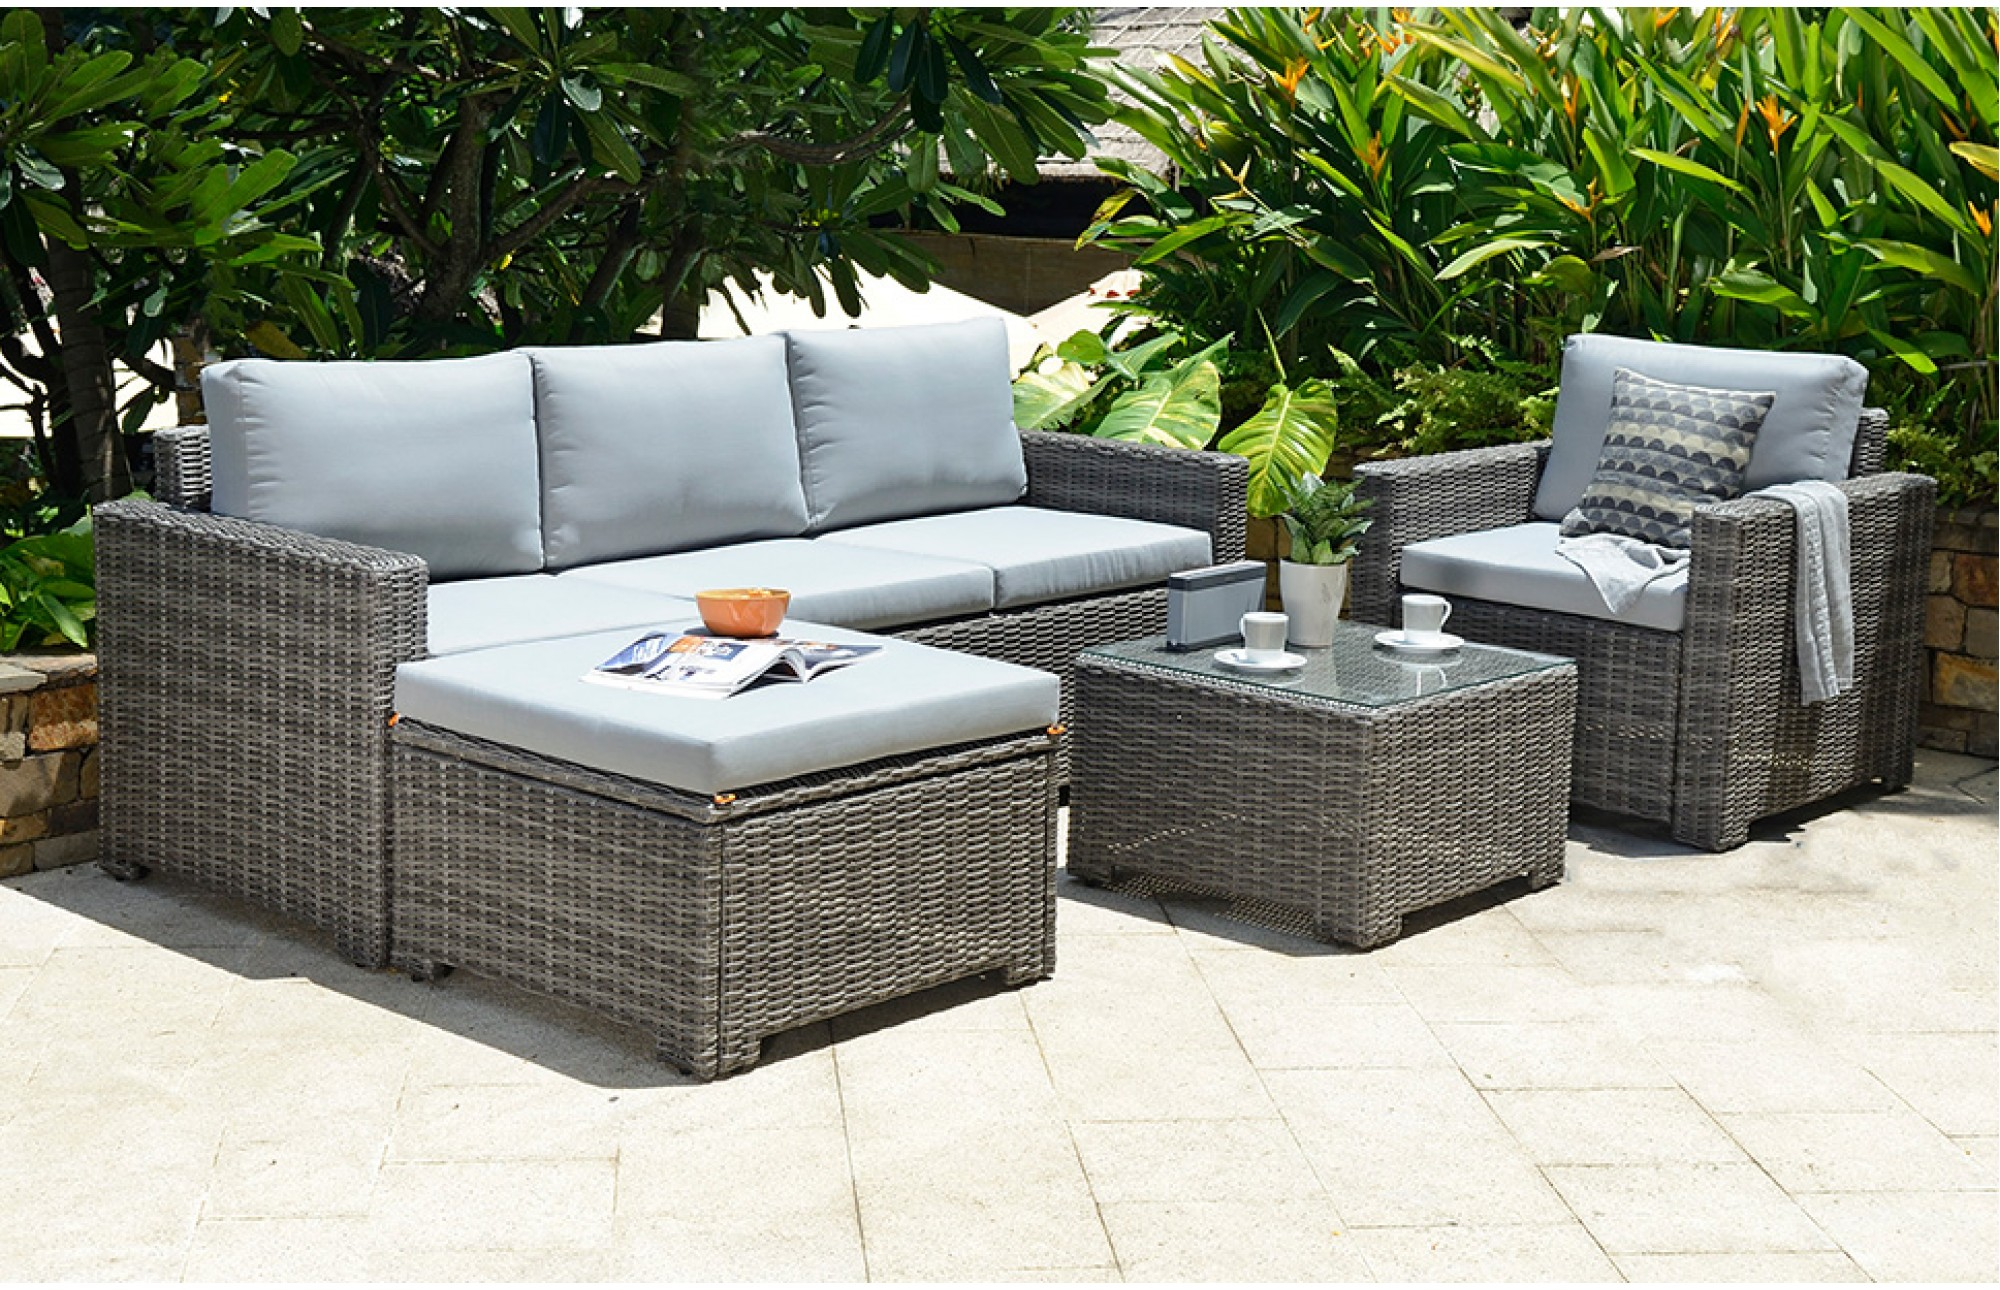 Lounge furniture for the garden garden furniture sets garden lounge furniture ideas 6 TJRAMTC